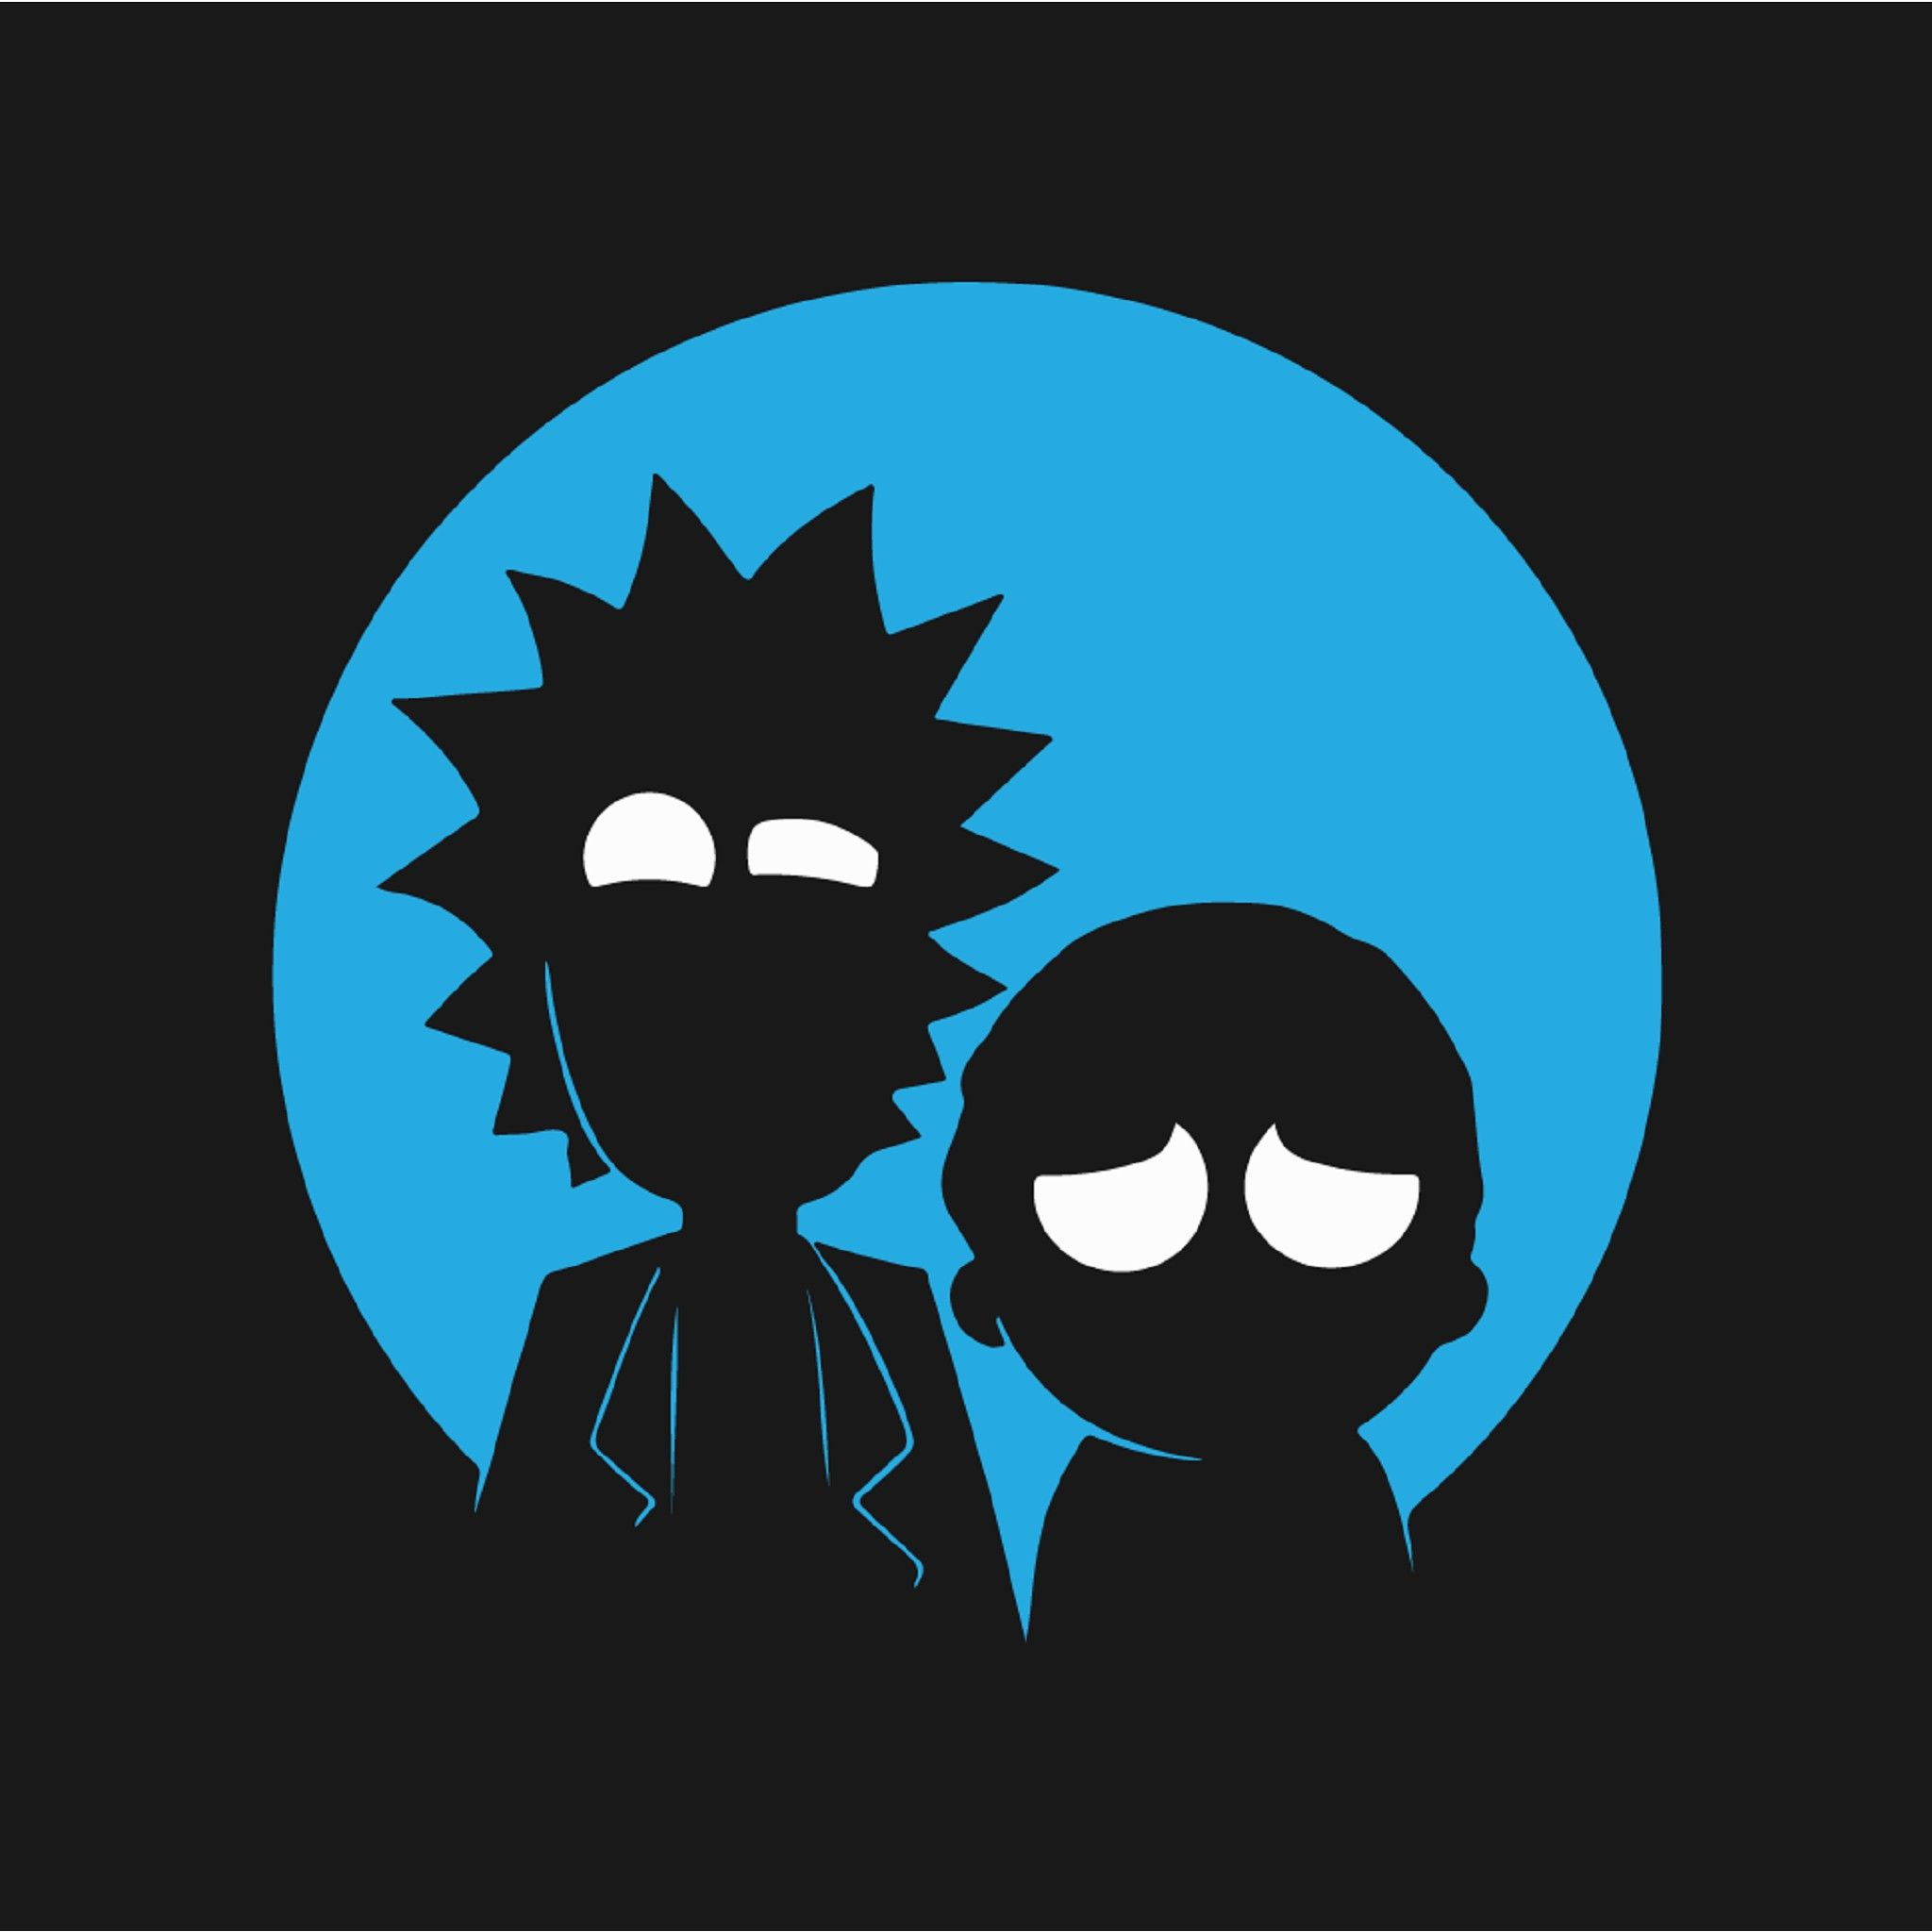 Rick And Mort Tap To See More Rick Morty Wallpapers Mobile9 Rick And Morty Poster Rick And Morty Rick And Morty Characters